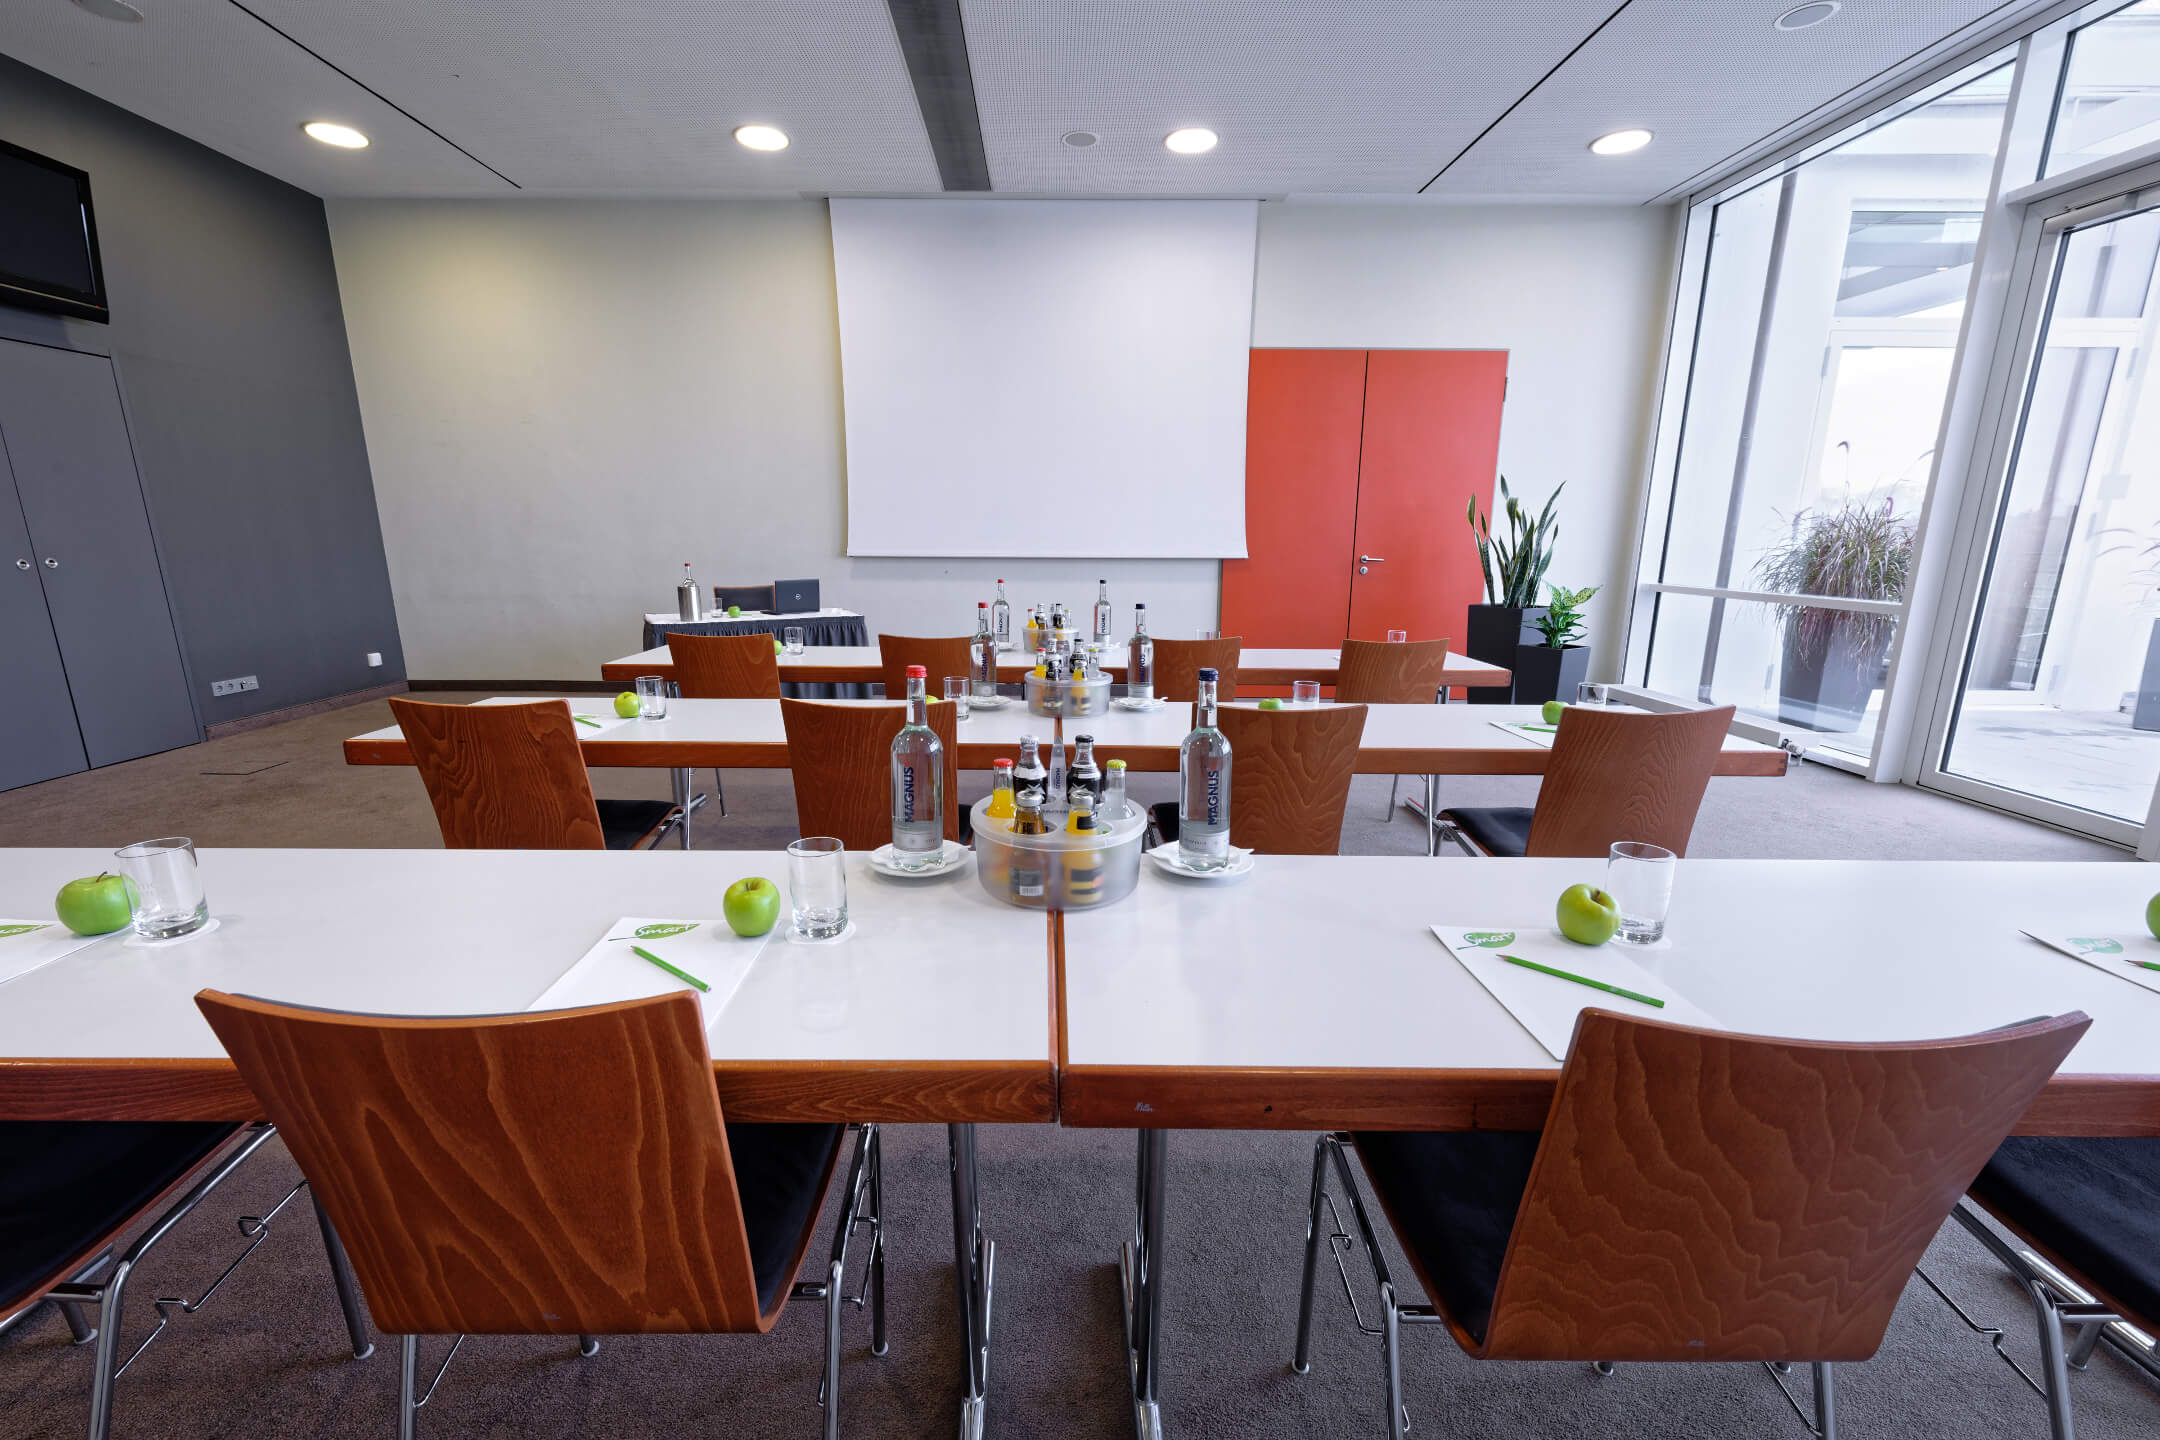 Cheltenham Meeting room | ATLANTIC Hotel Galopprennbahn Bremen